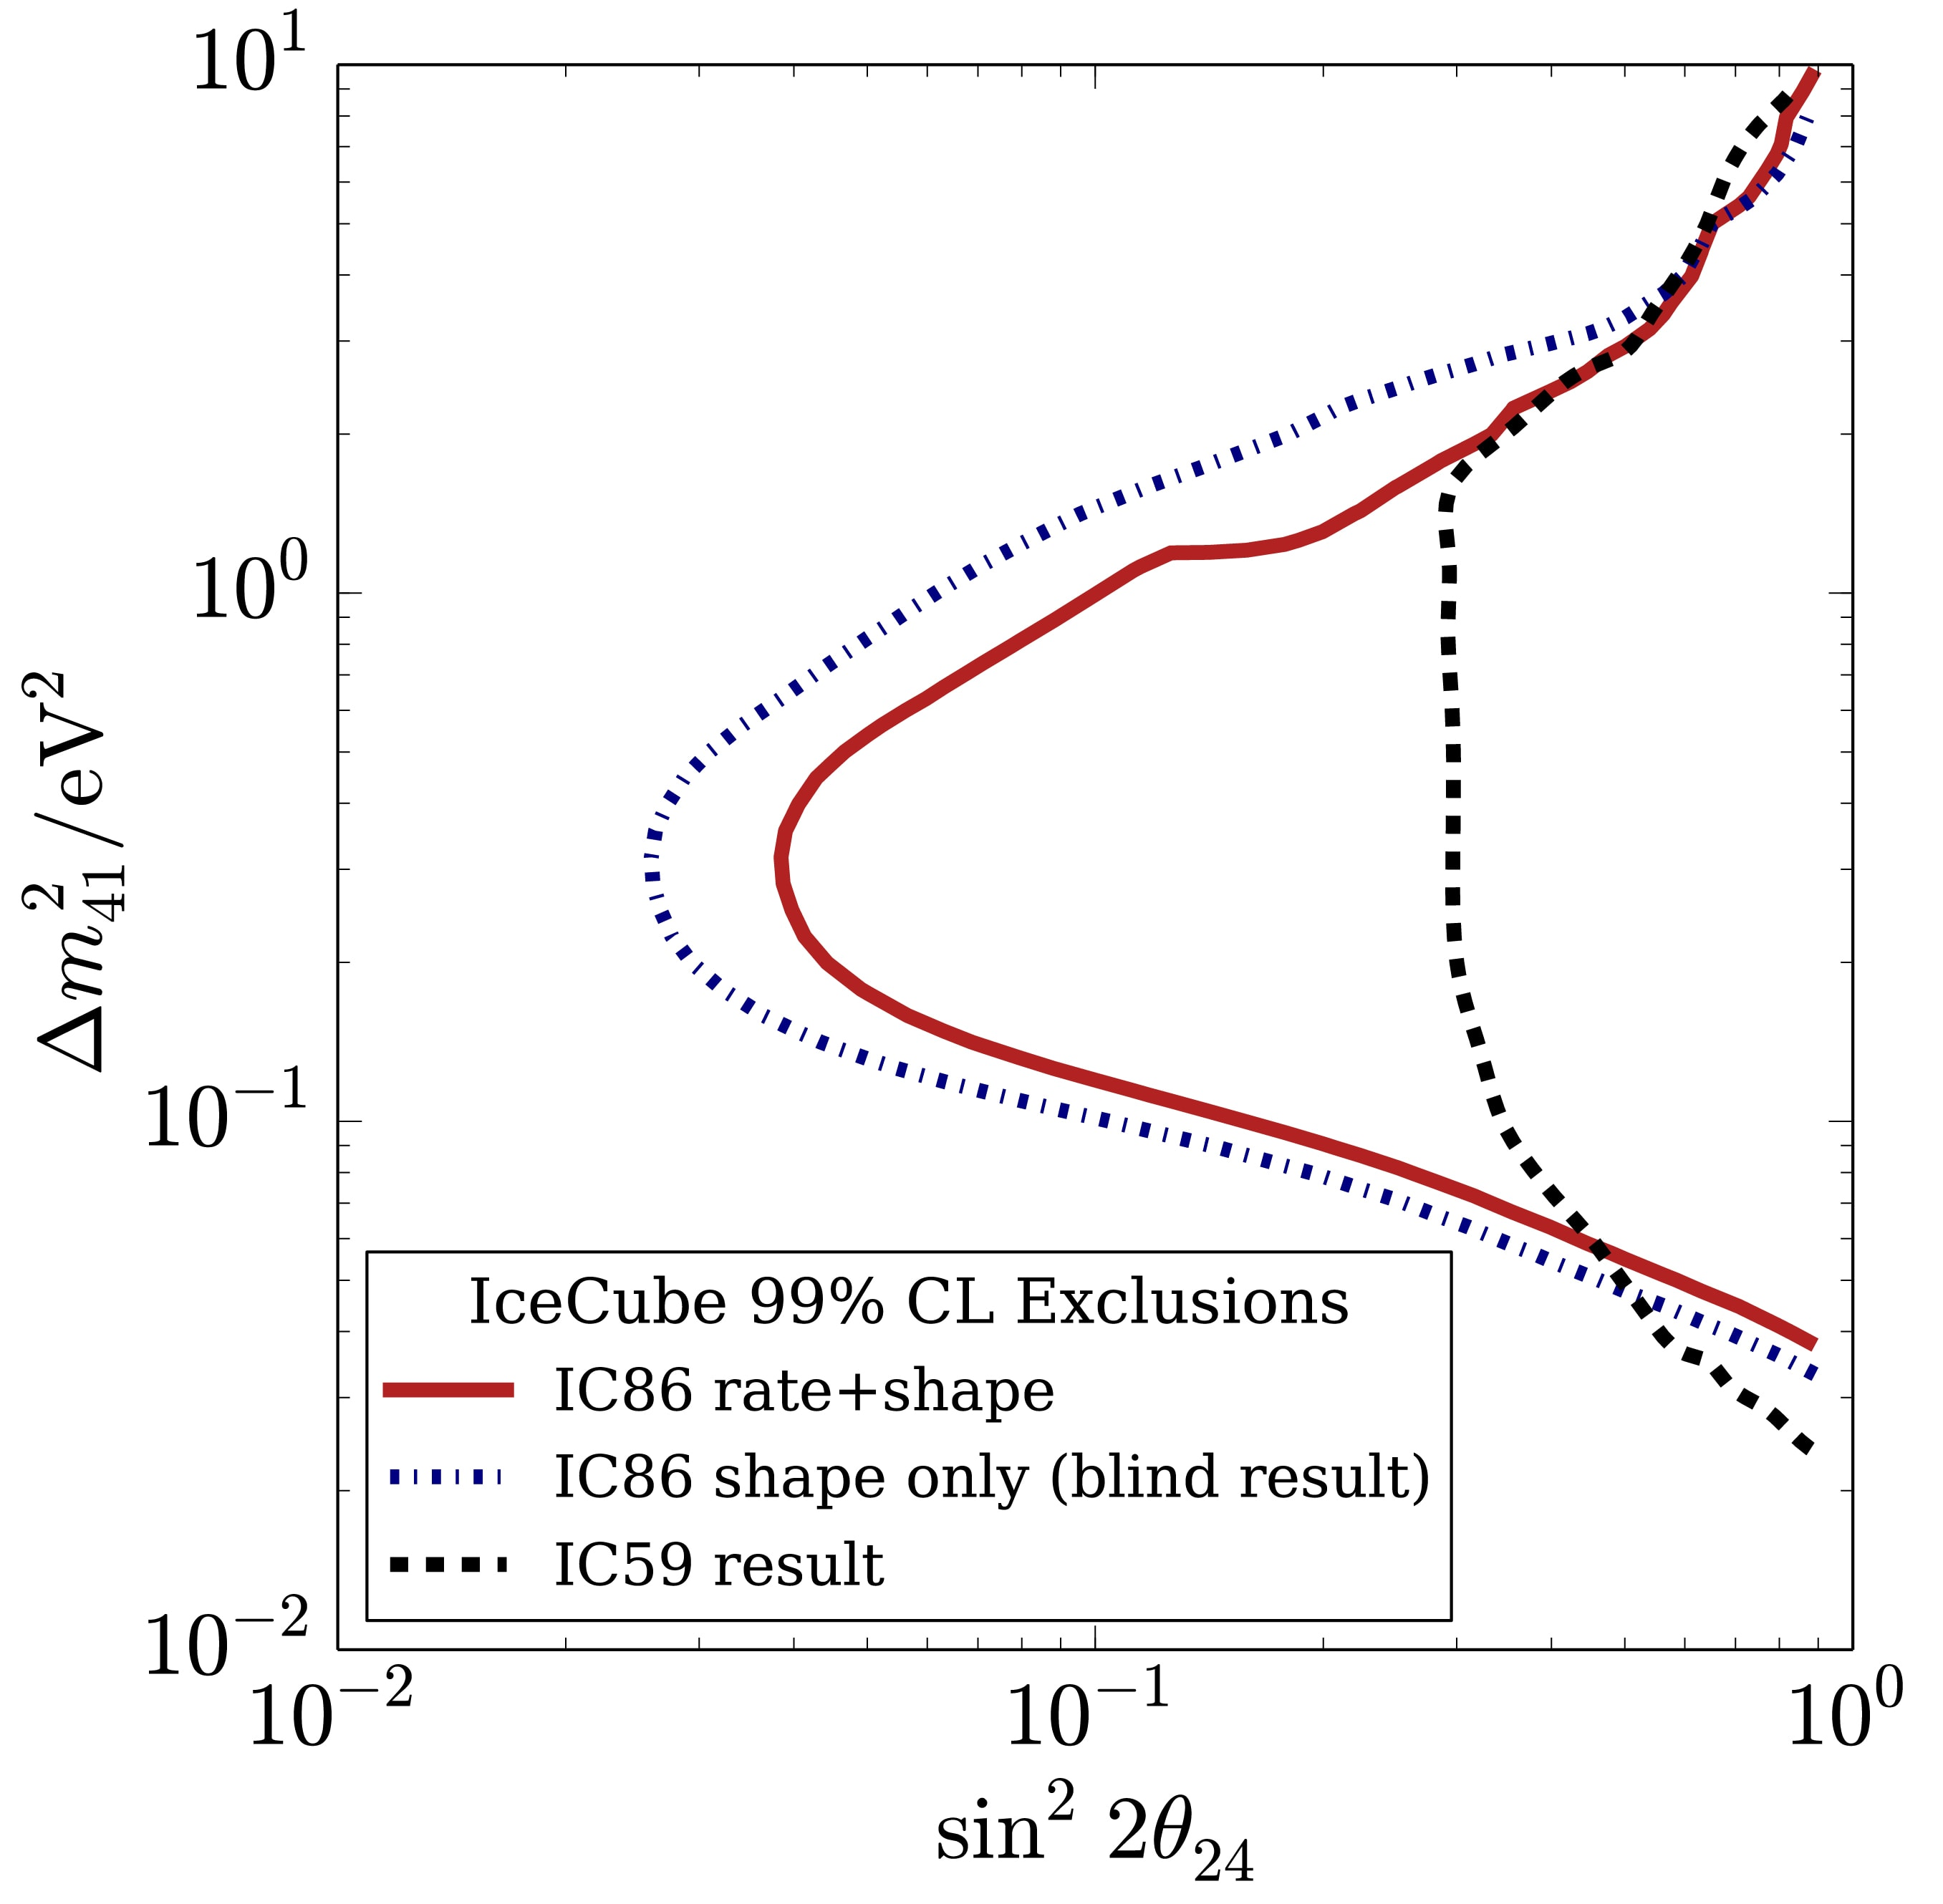 Exclusion limits for an eV-mass sterile neutrino